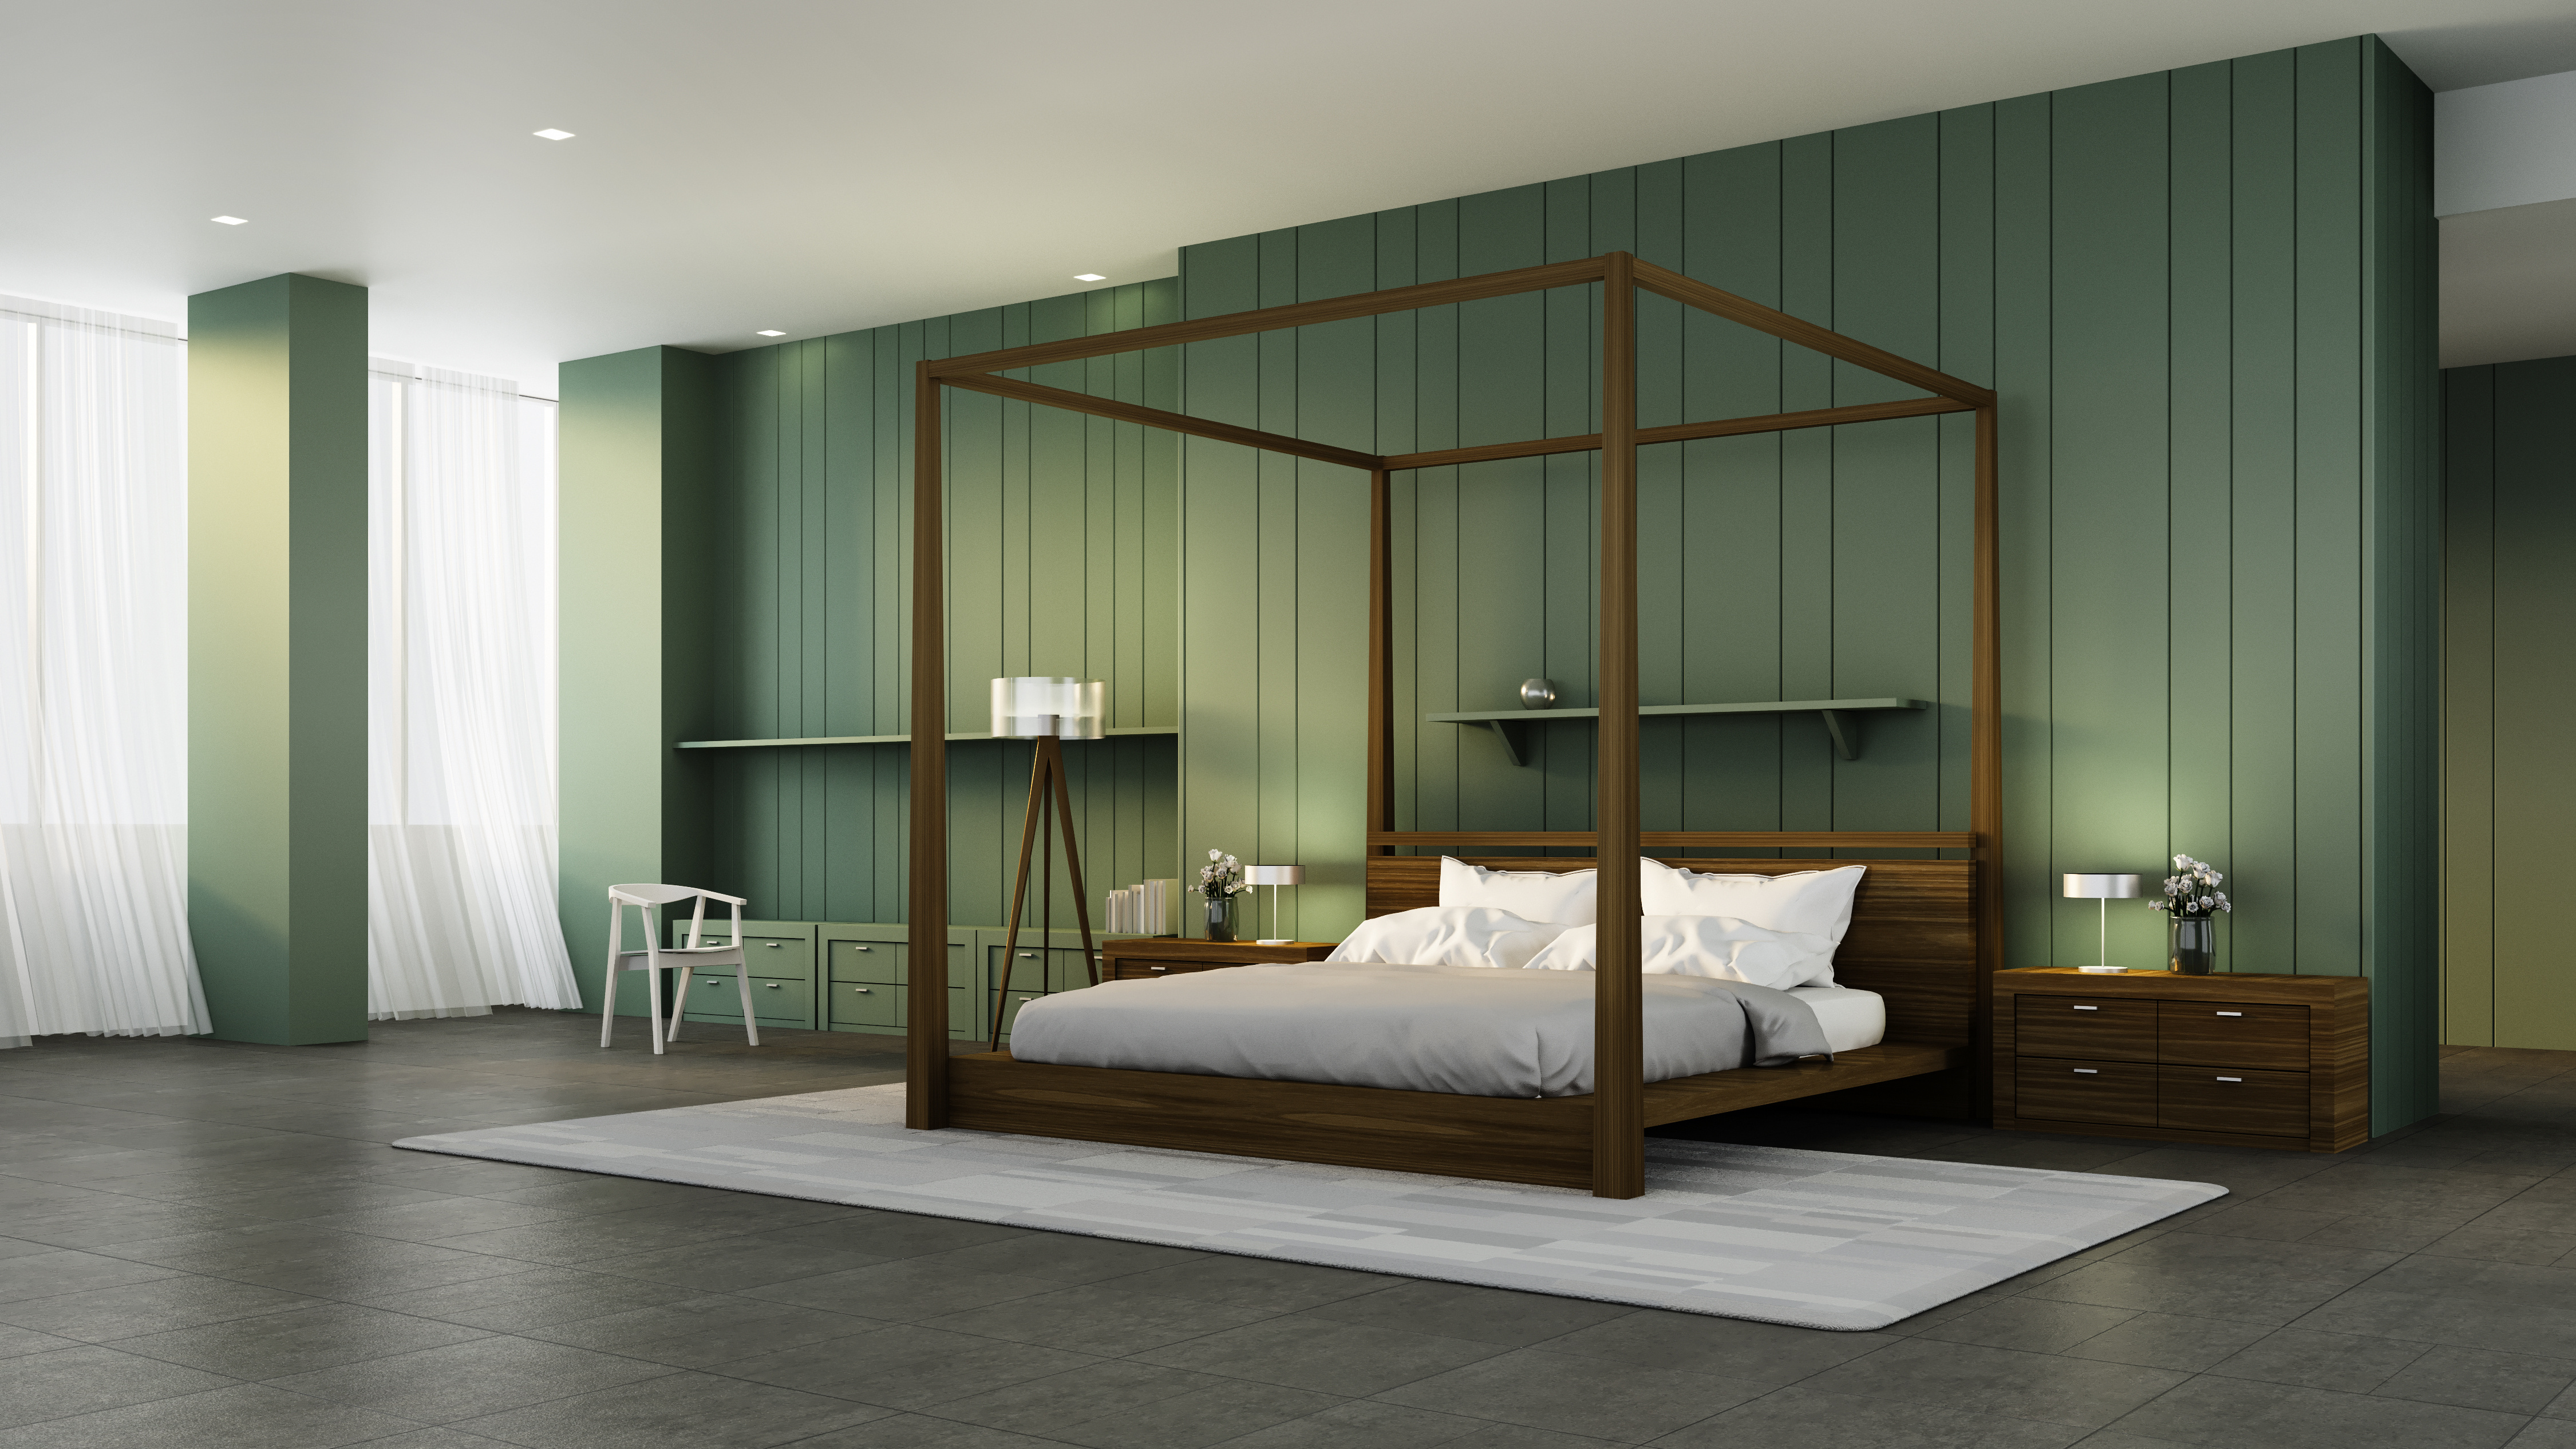 plyco-bedroom-interior-plywood-wall-panelling